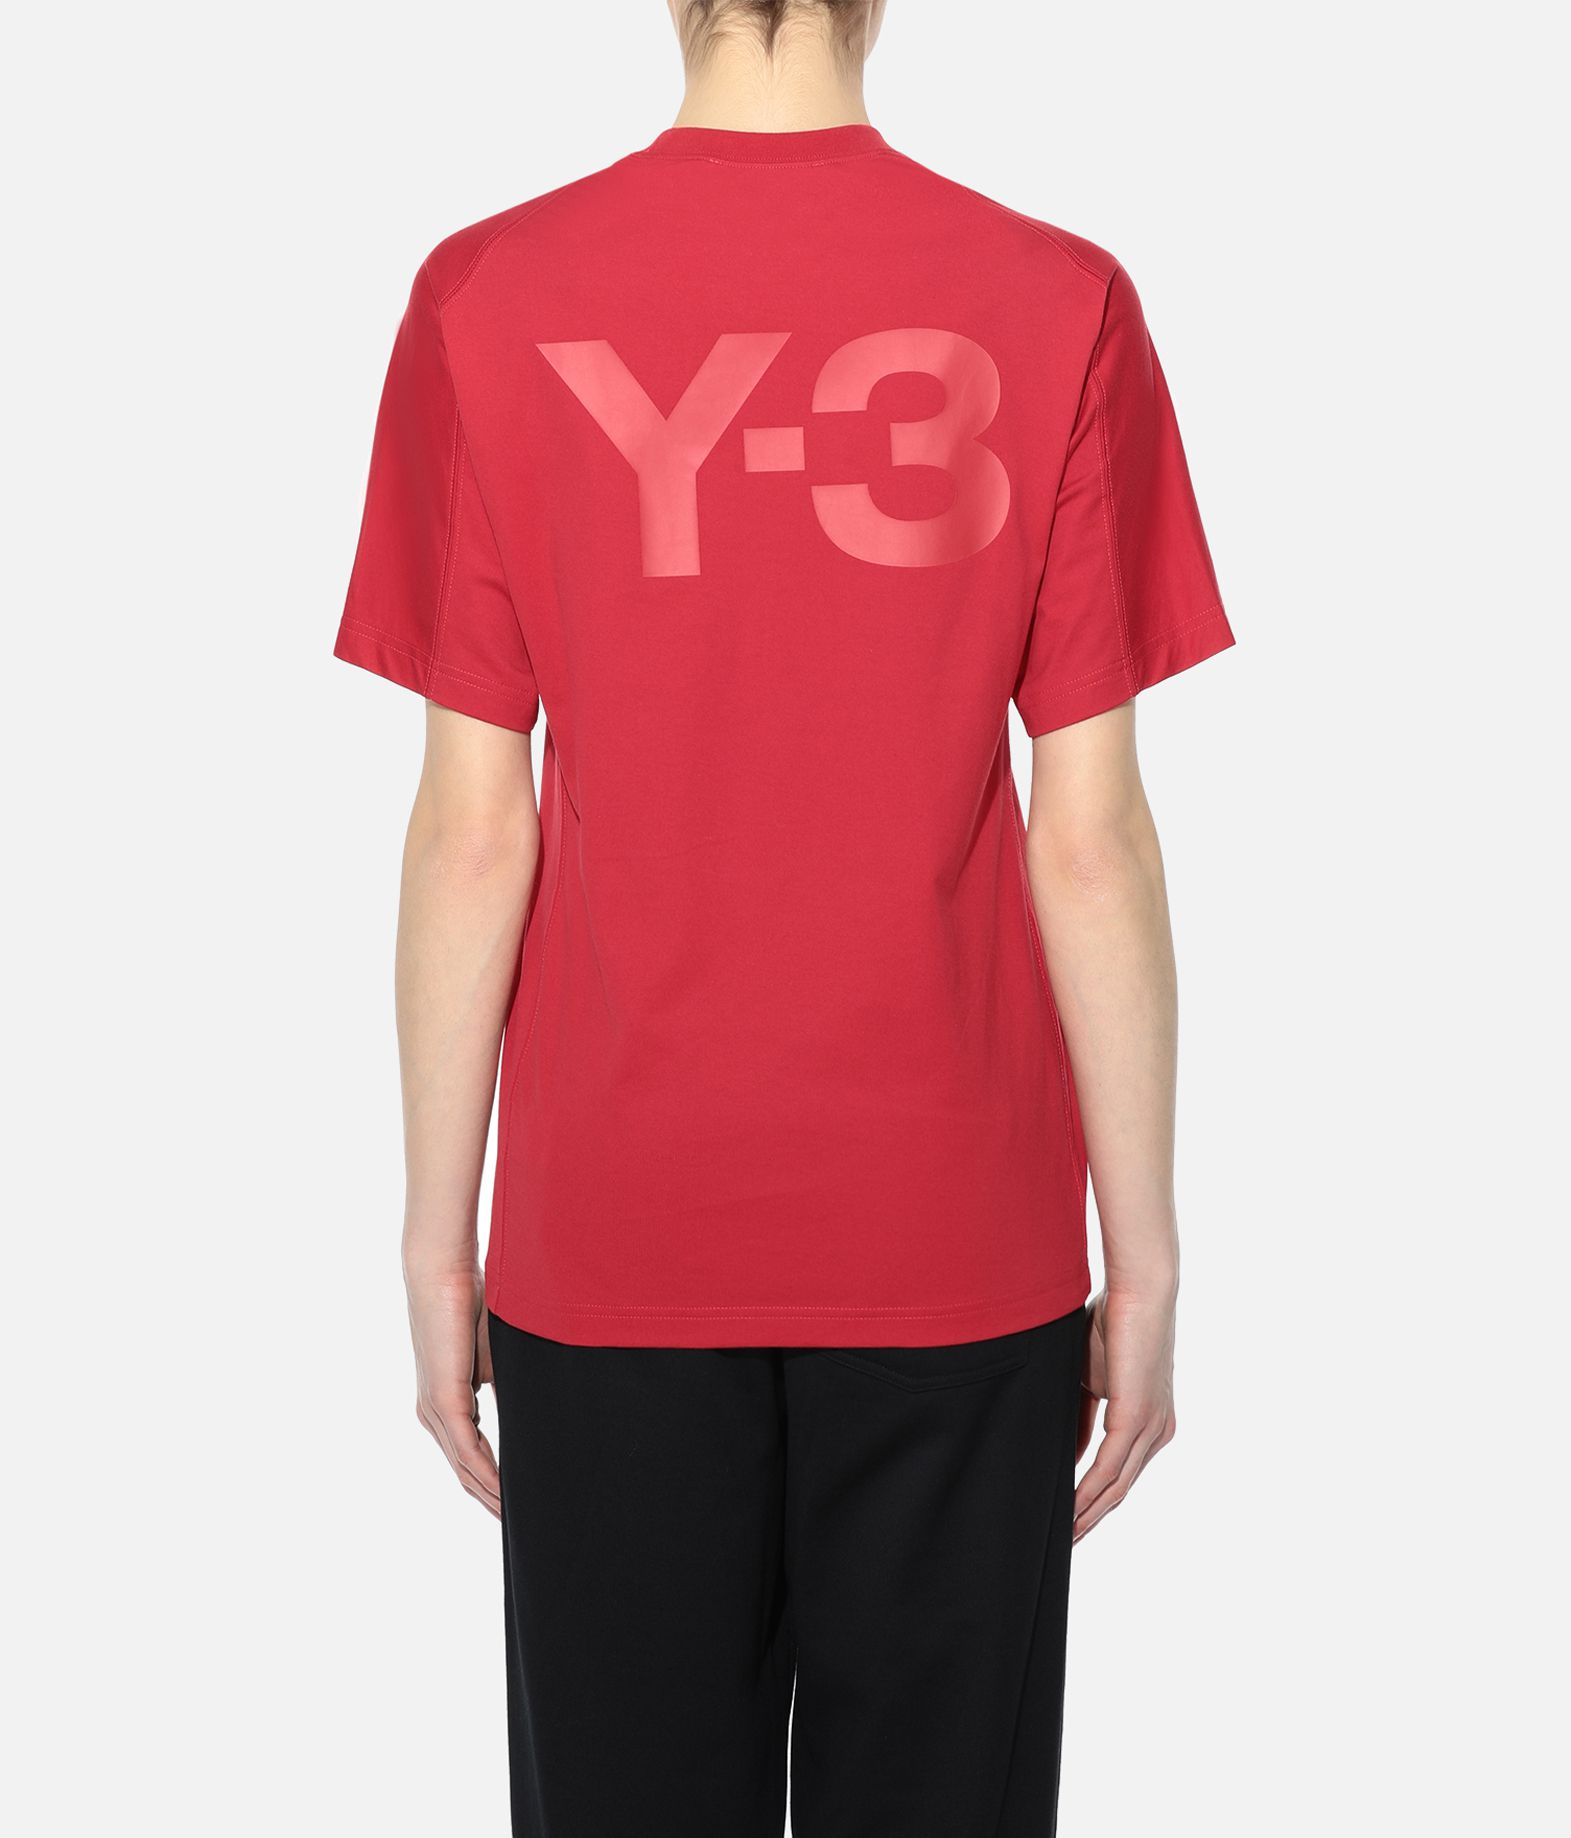 Y-3 Y-3 Classic Crewneck Tee Short sleeve t-shirt Woman d